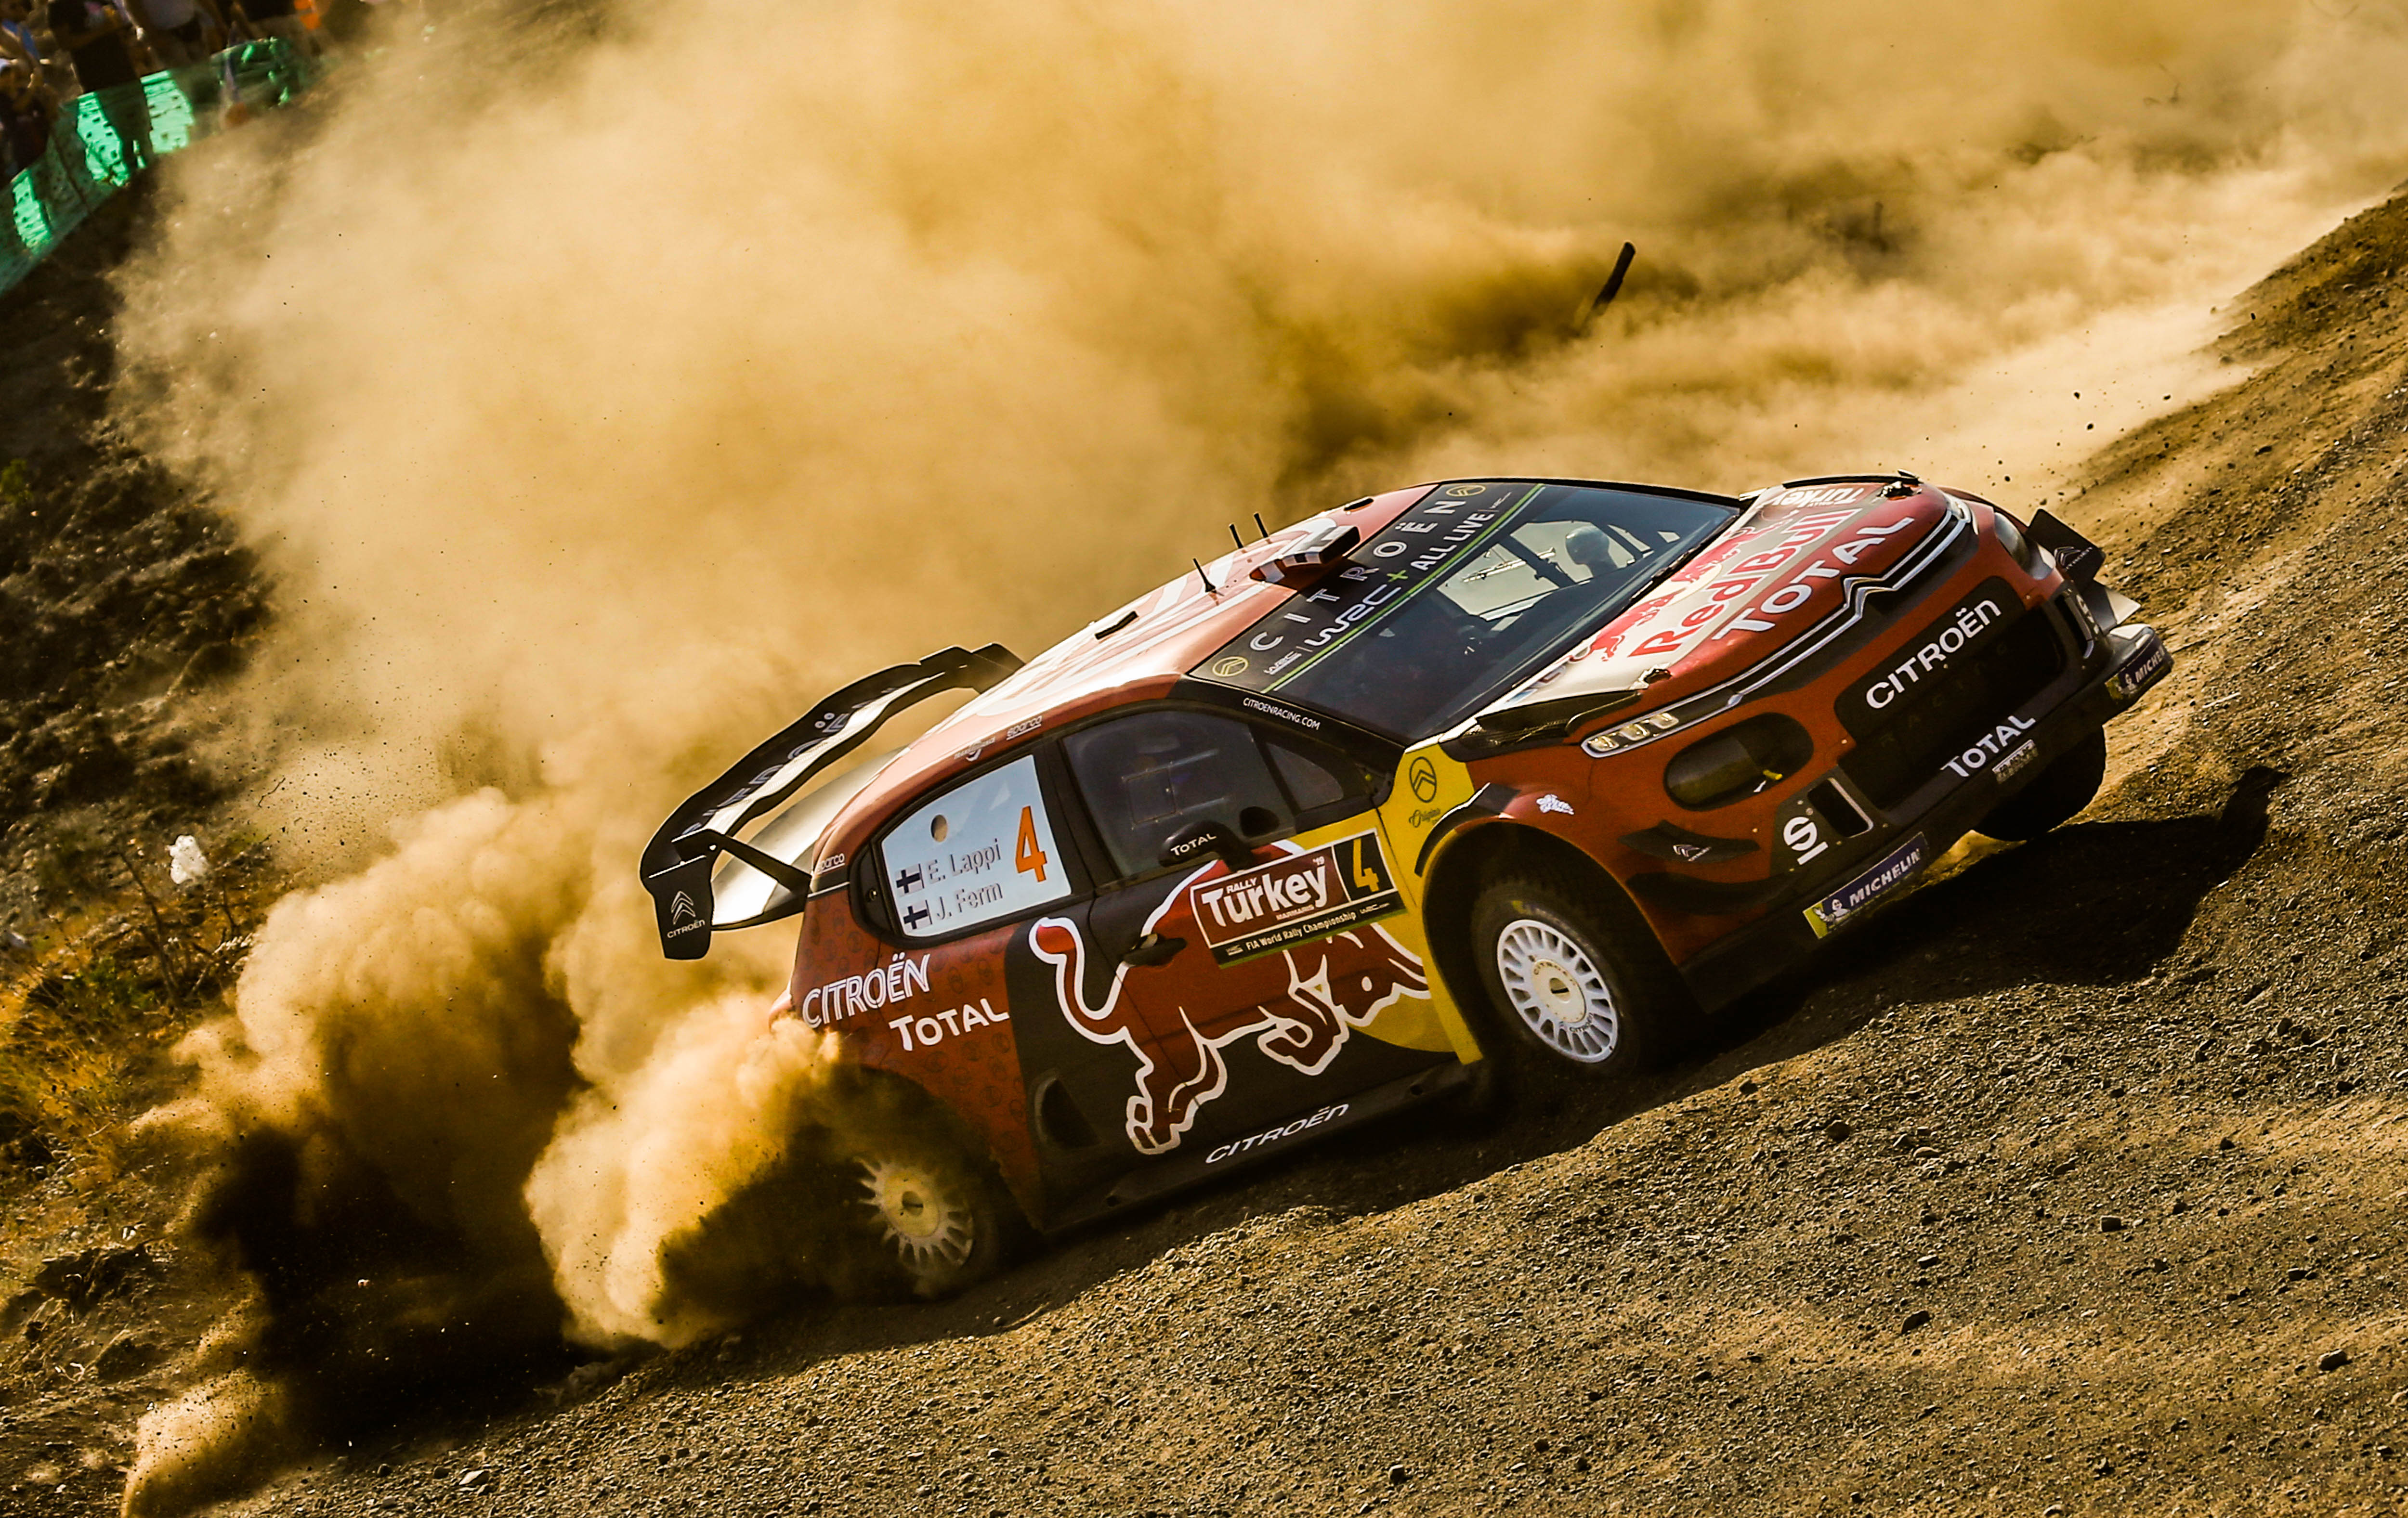 CITROËN CLAIMS A ONE-TWO FINISH AND MOVES BACK INTO THE TITLE HUNT !